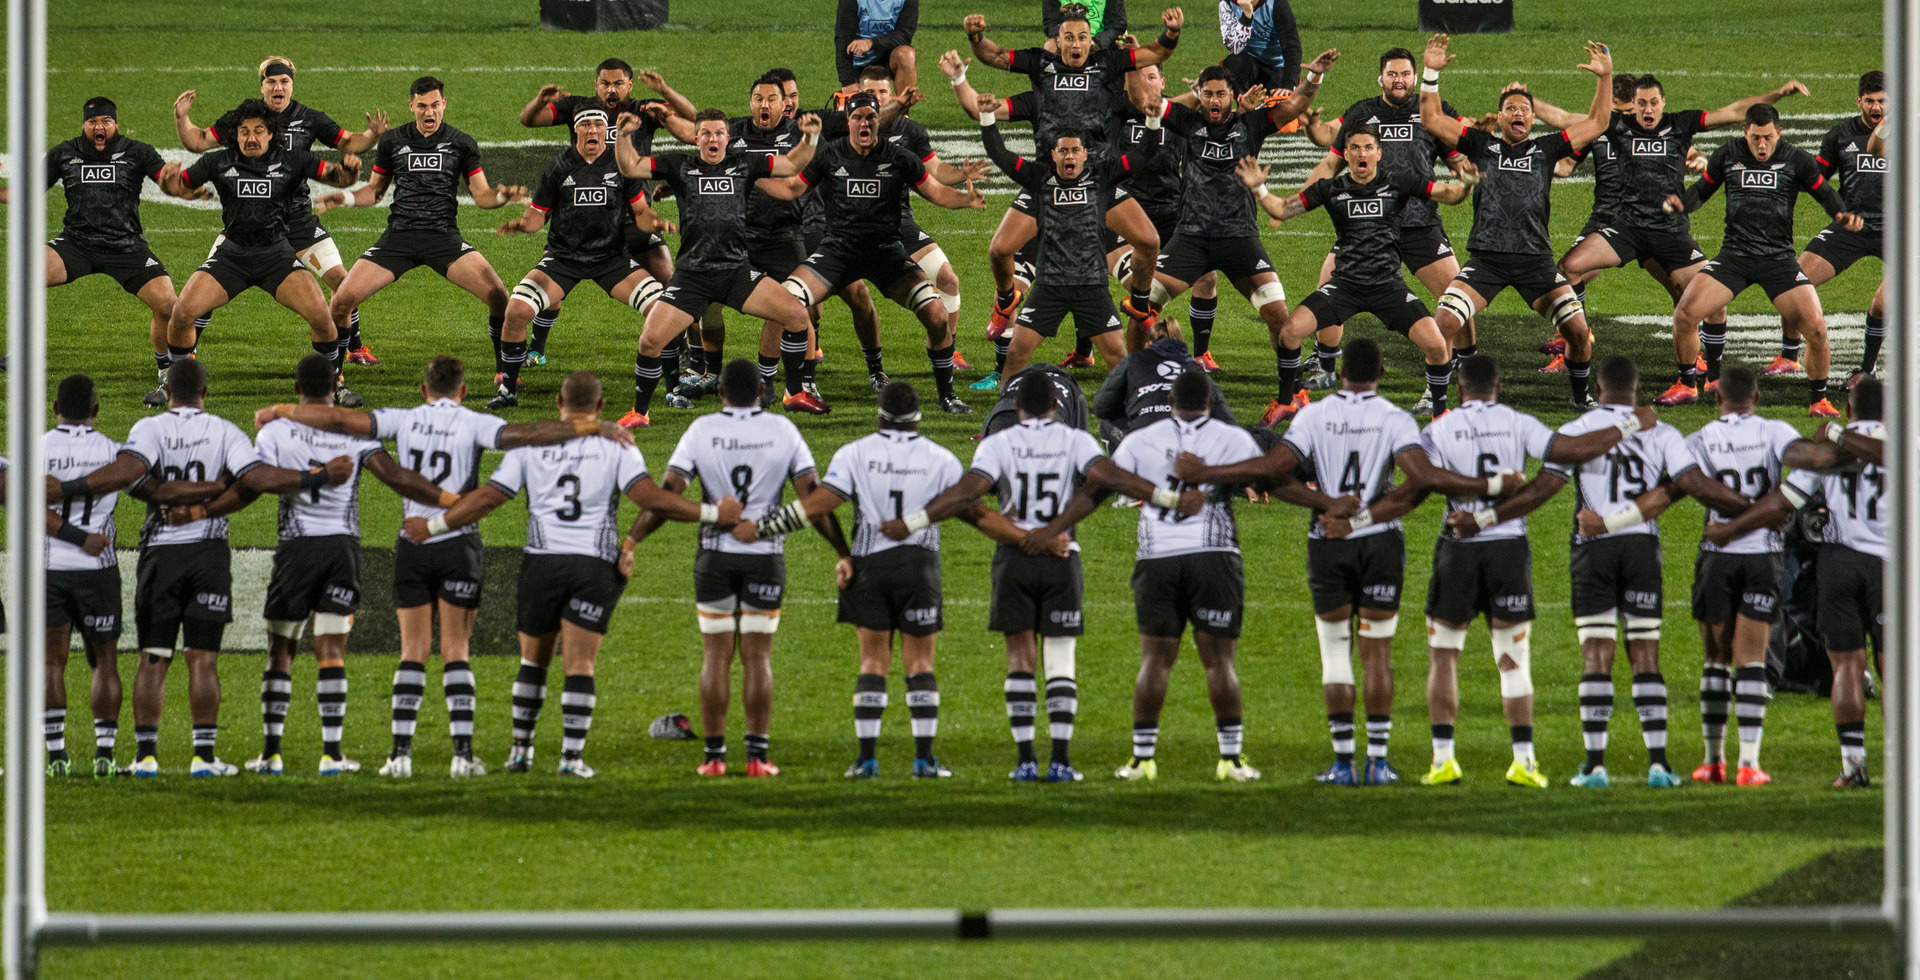 Māori All Blacks haka formation in game against the Flying Fijians was not intended to be malicious